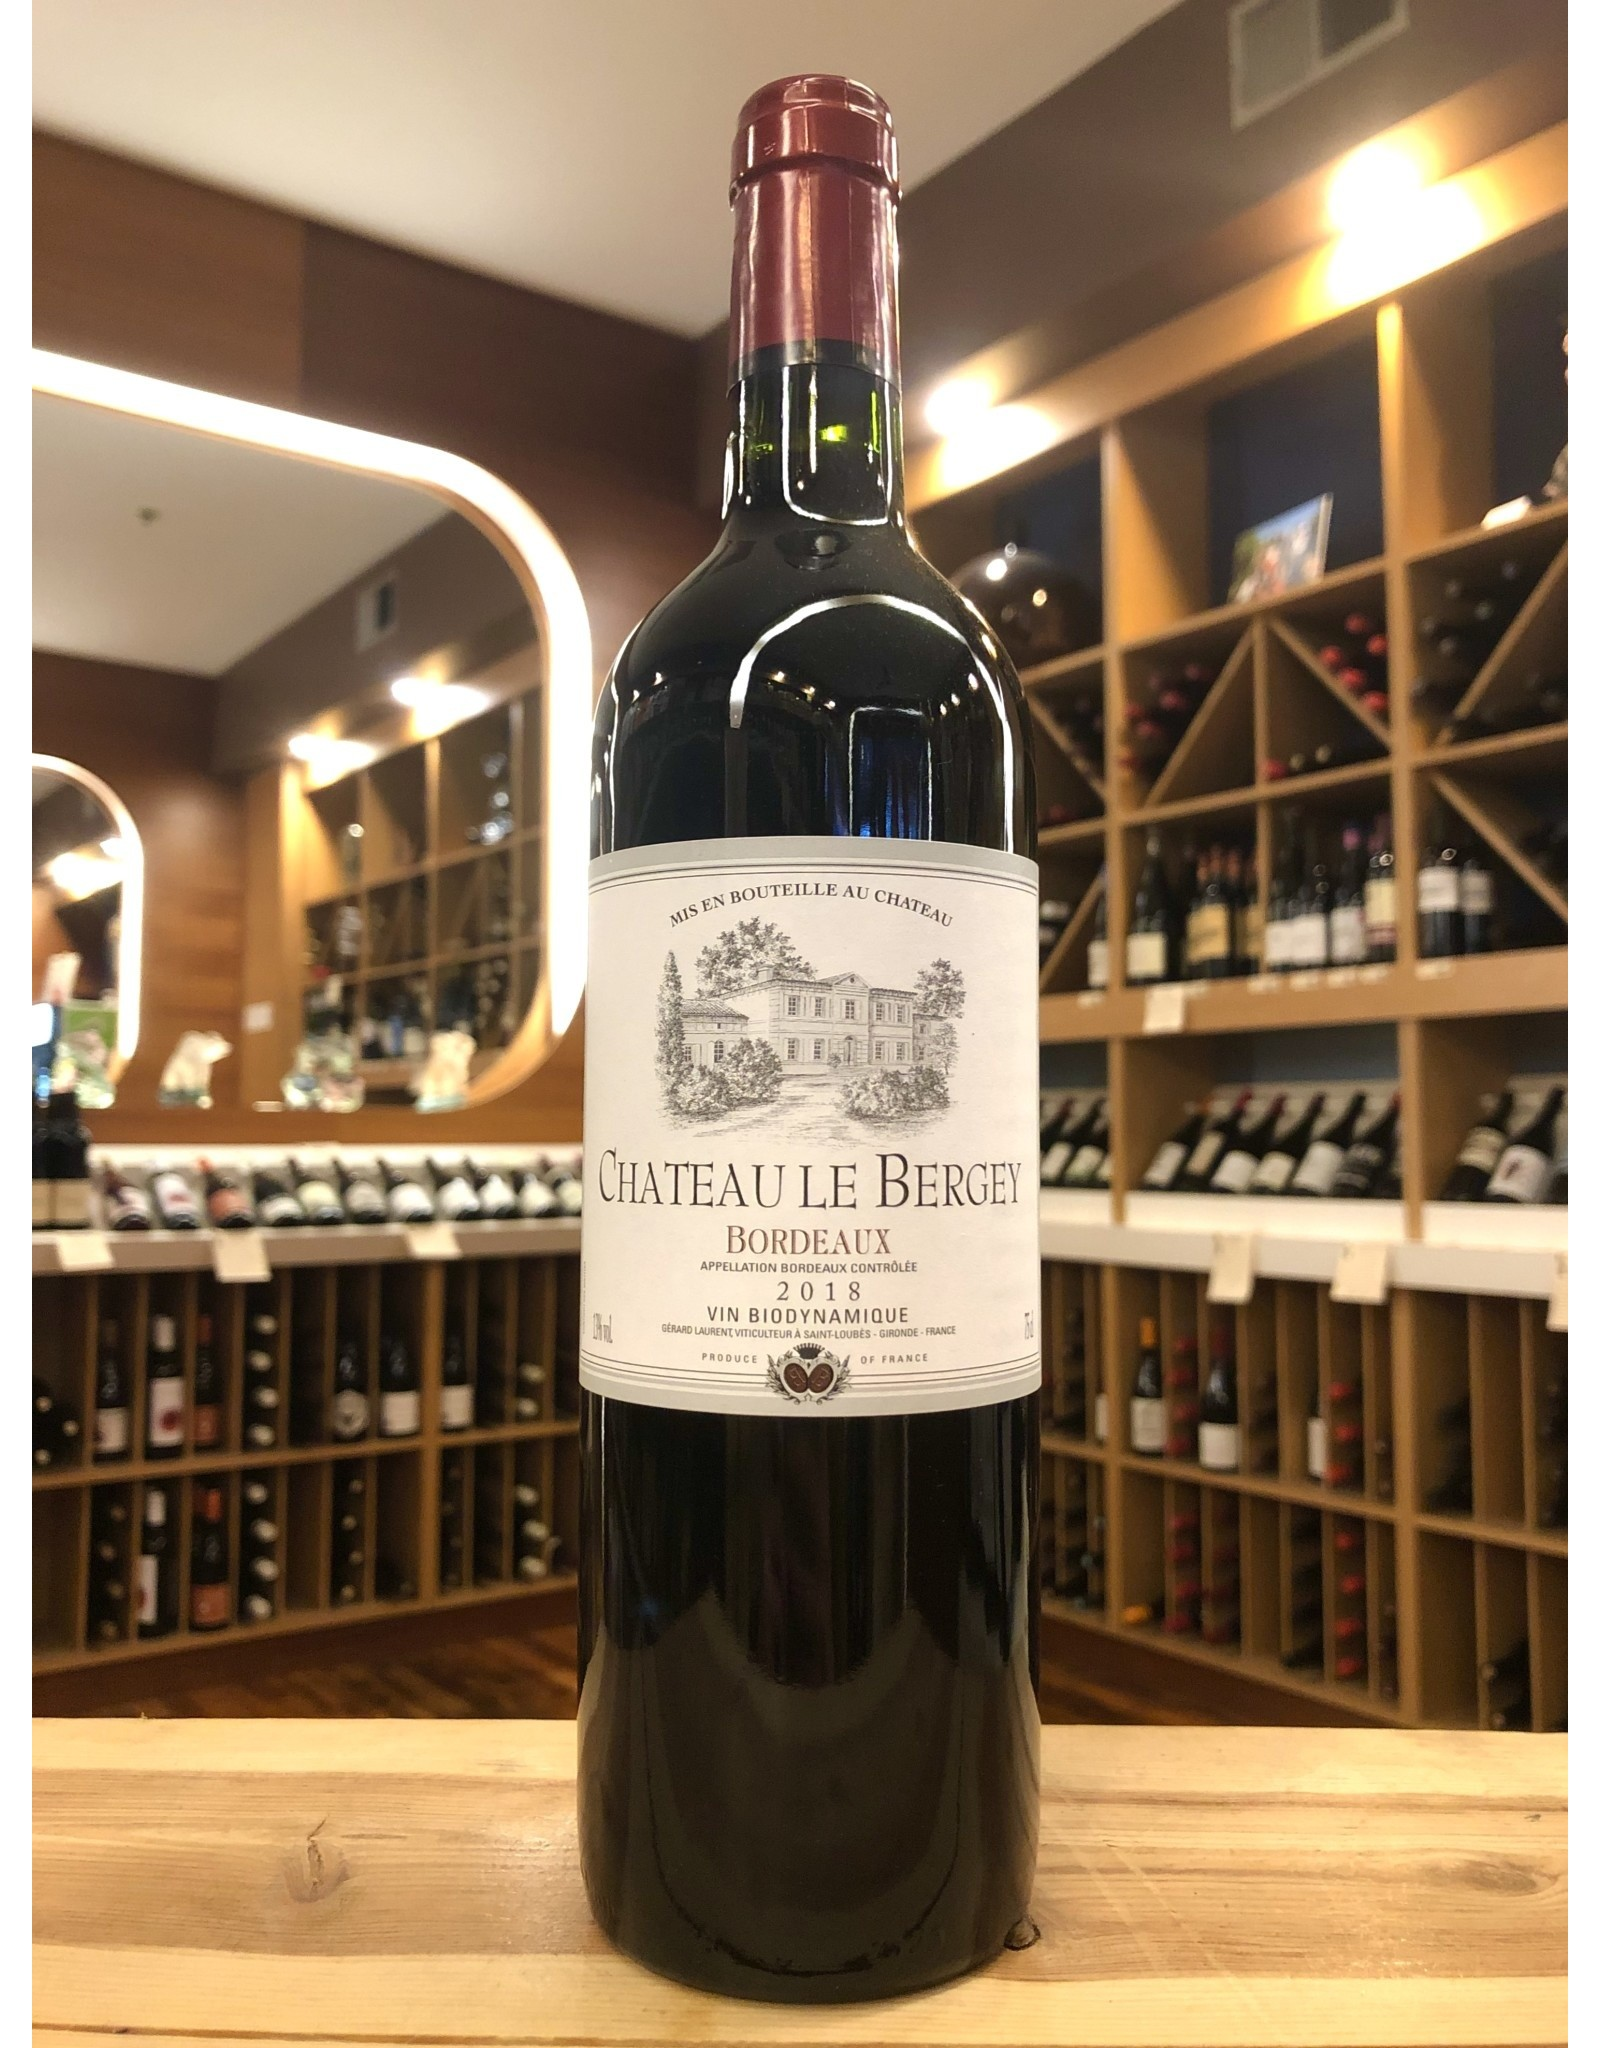 Chateau le Bergey Bordeaux - 750 ML